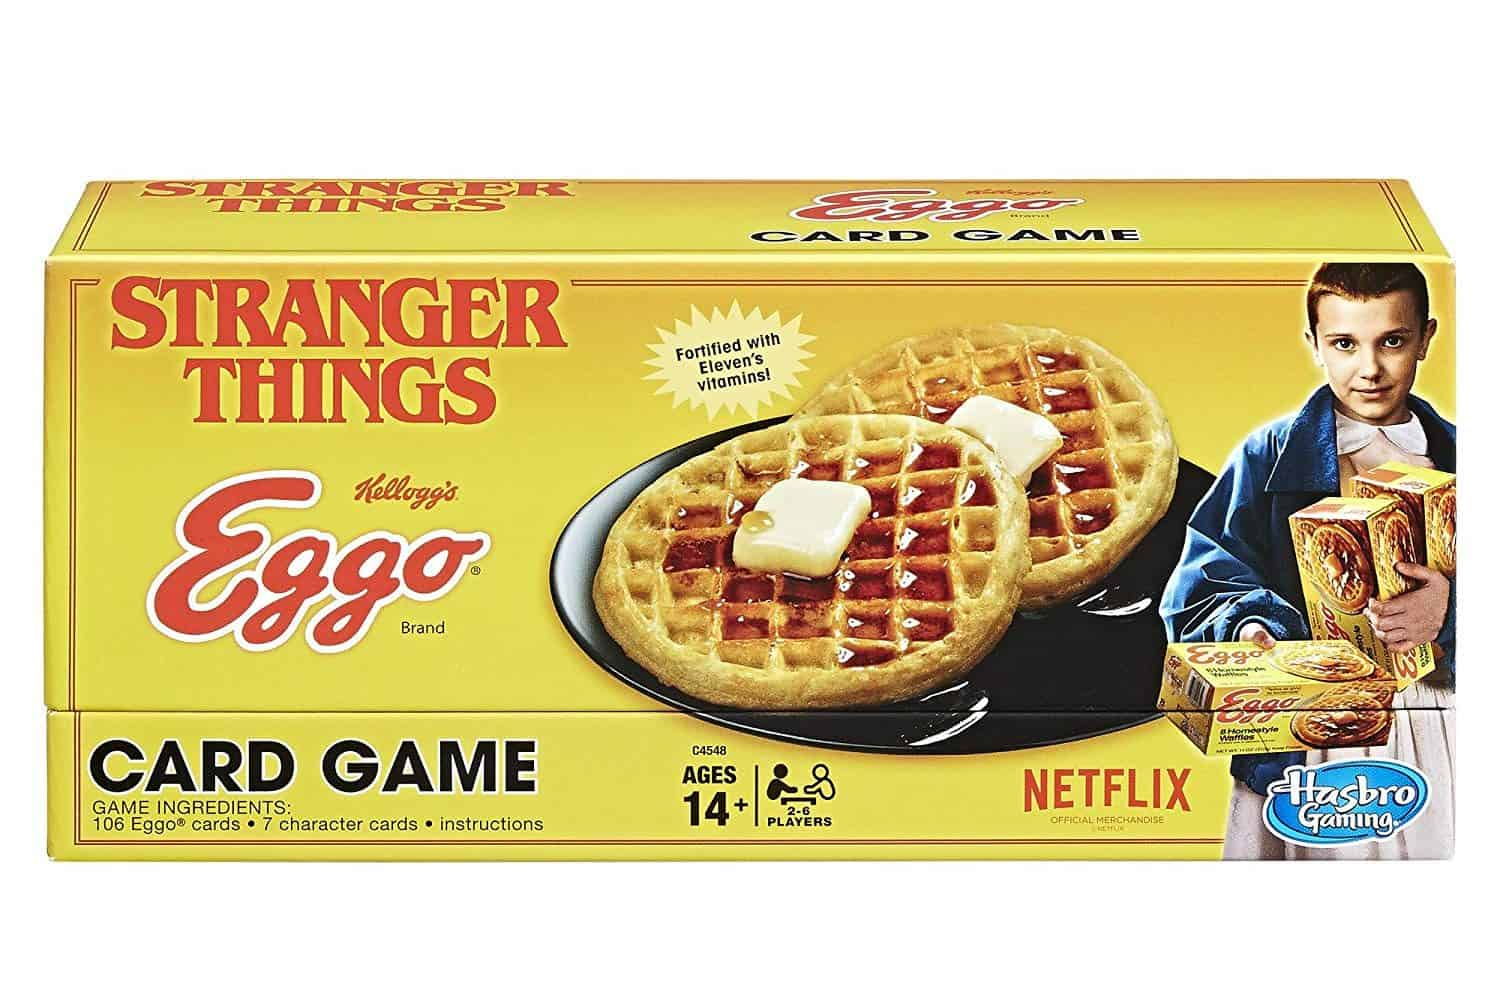 eggo card game image